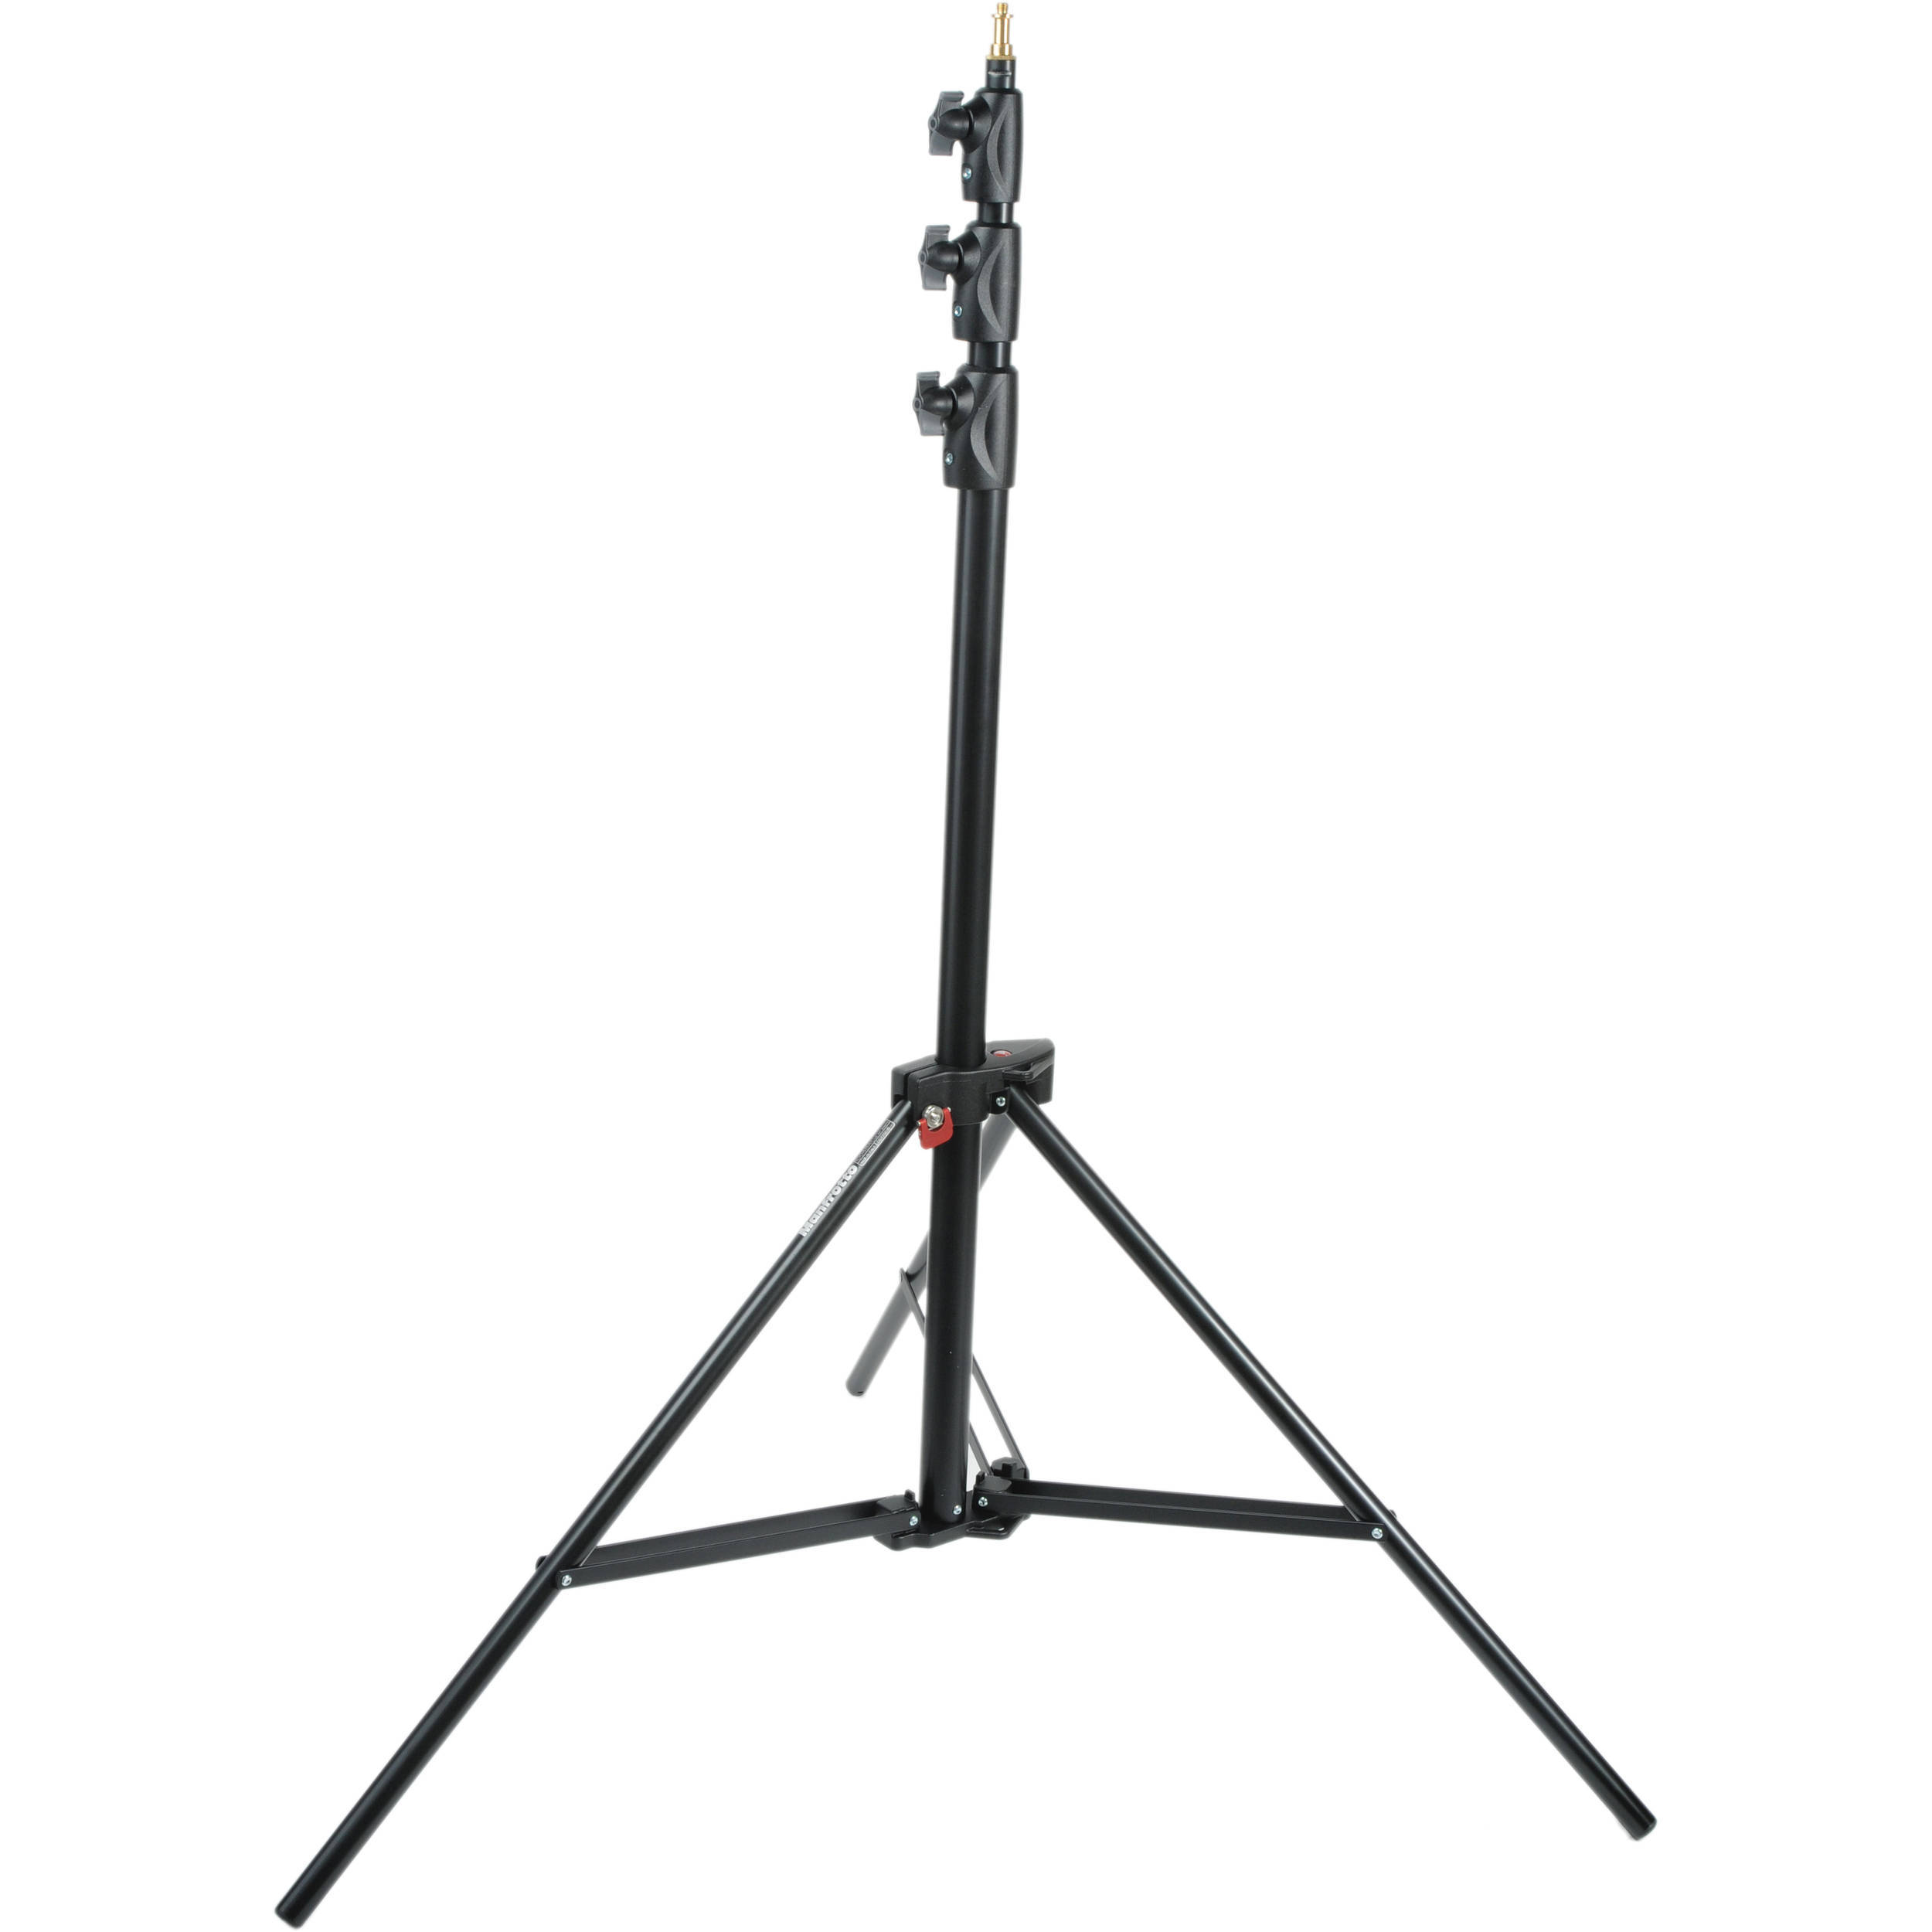 Manfrotto 1004BAC - statyw MASTER 124cm/366 cm Manfrotto 1004BAC - statyw MASTER 124cm/366 cm